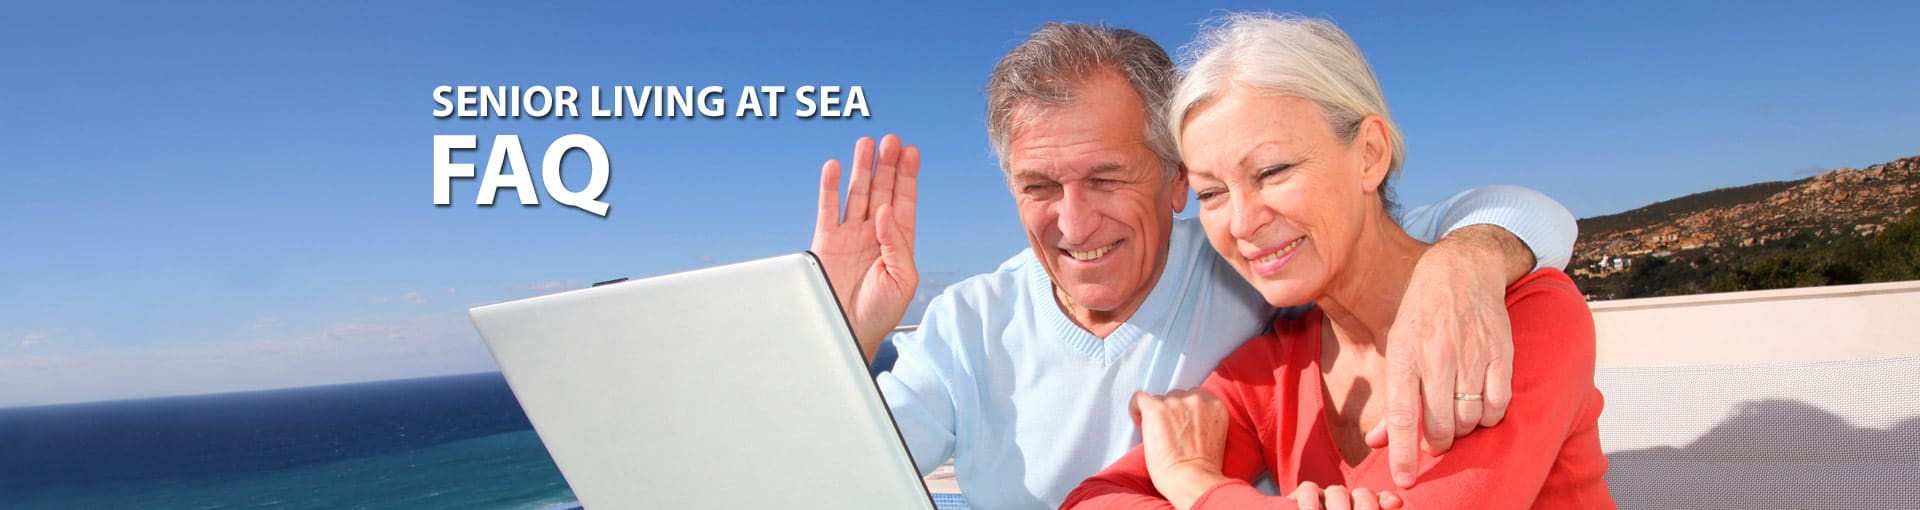 Senior Living at Sea FAQ